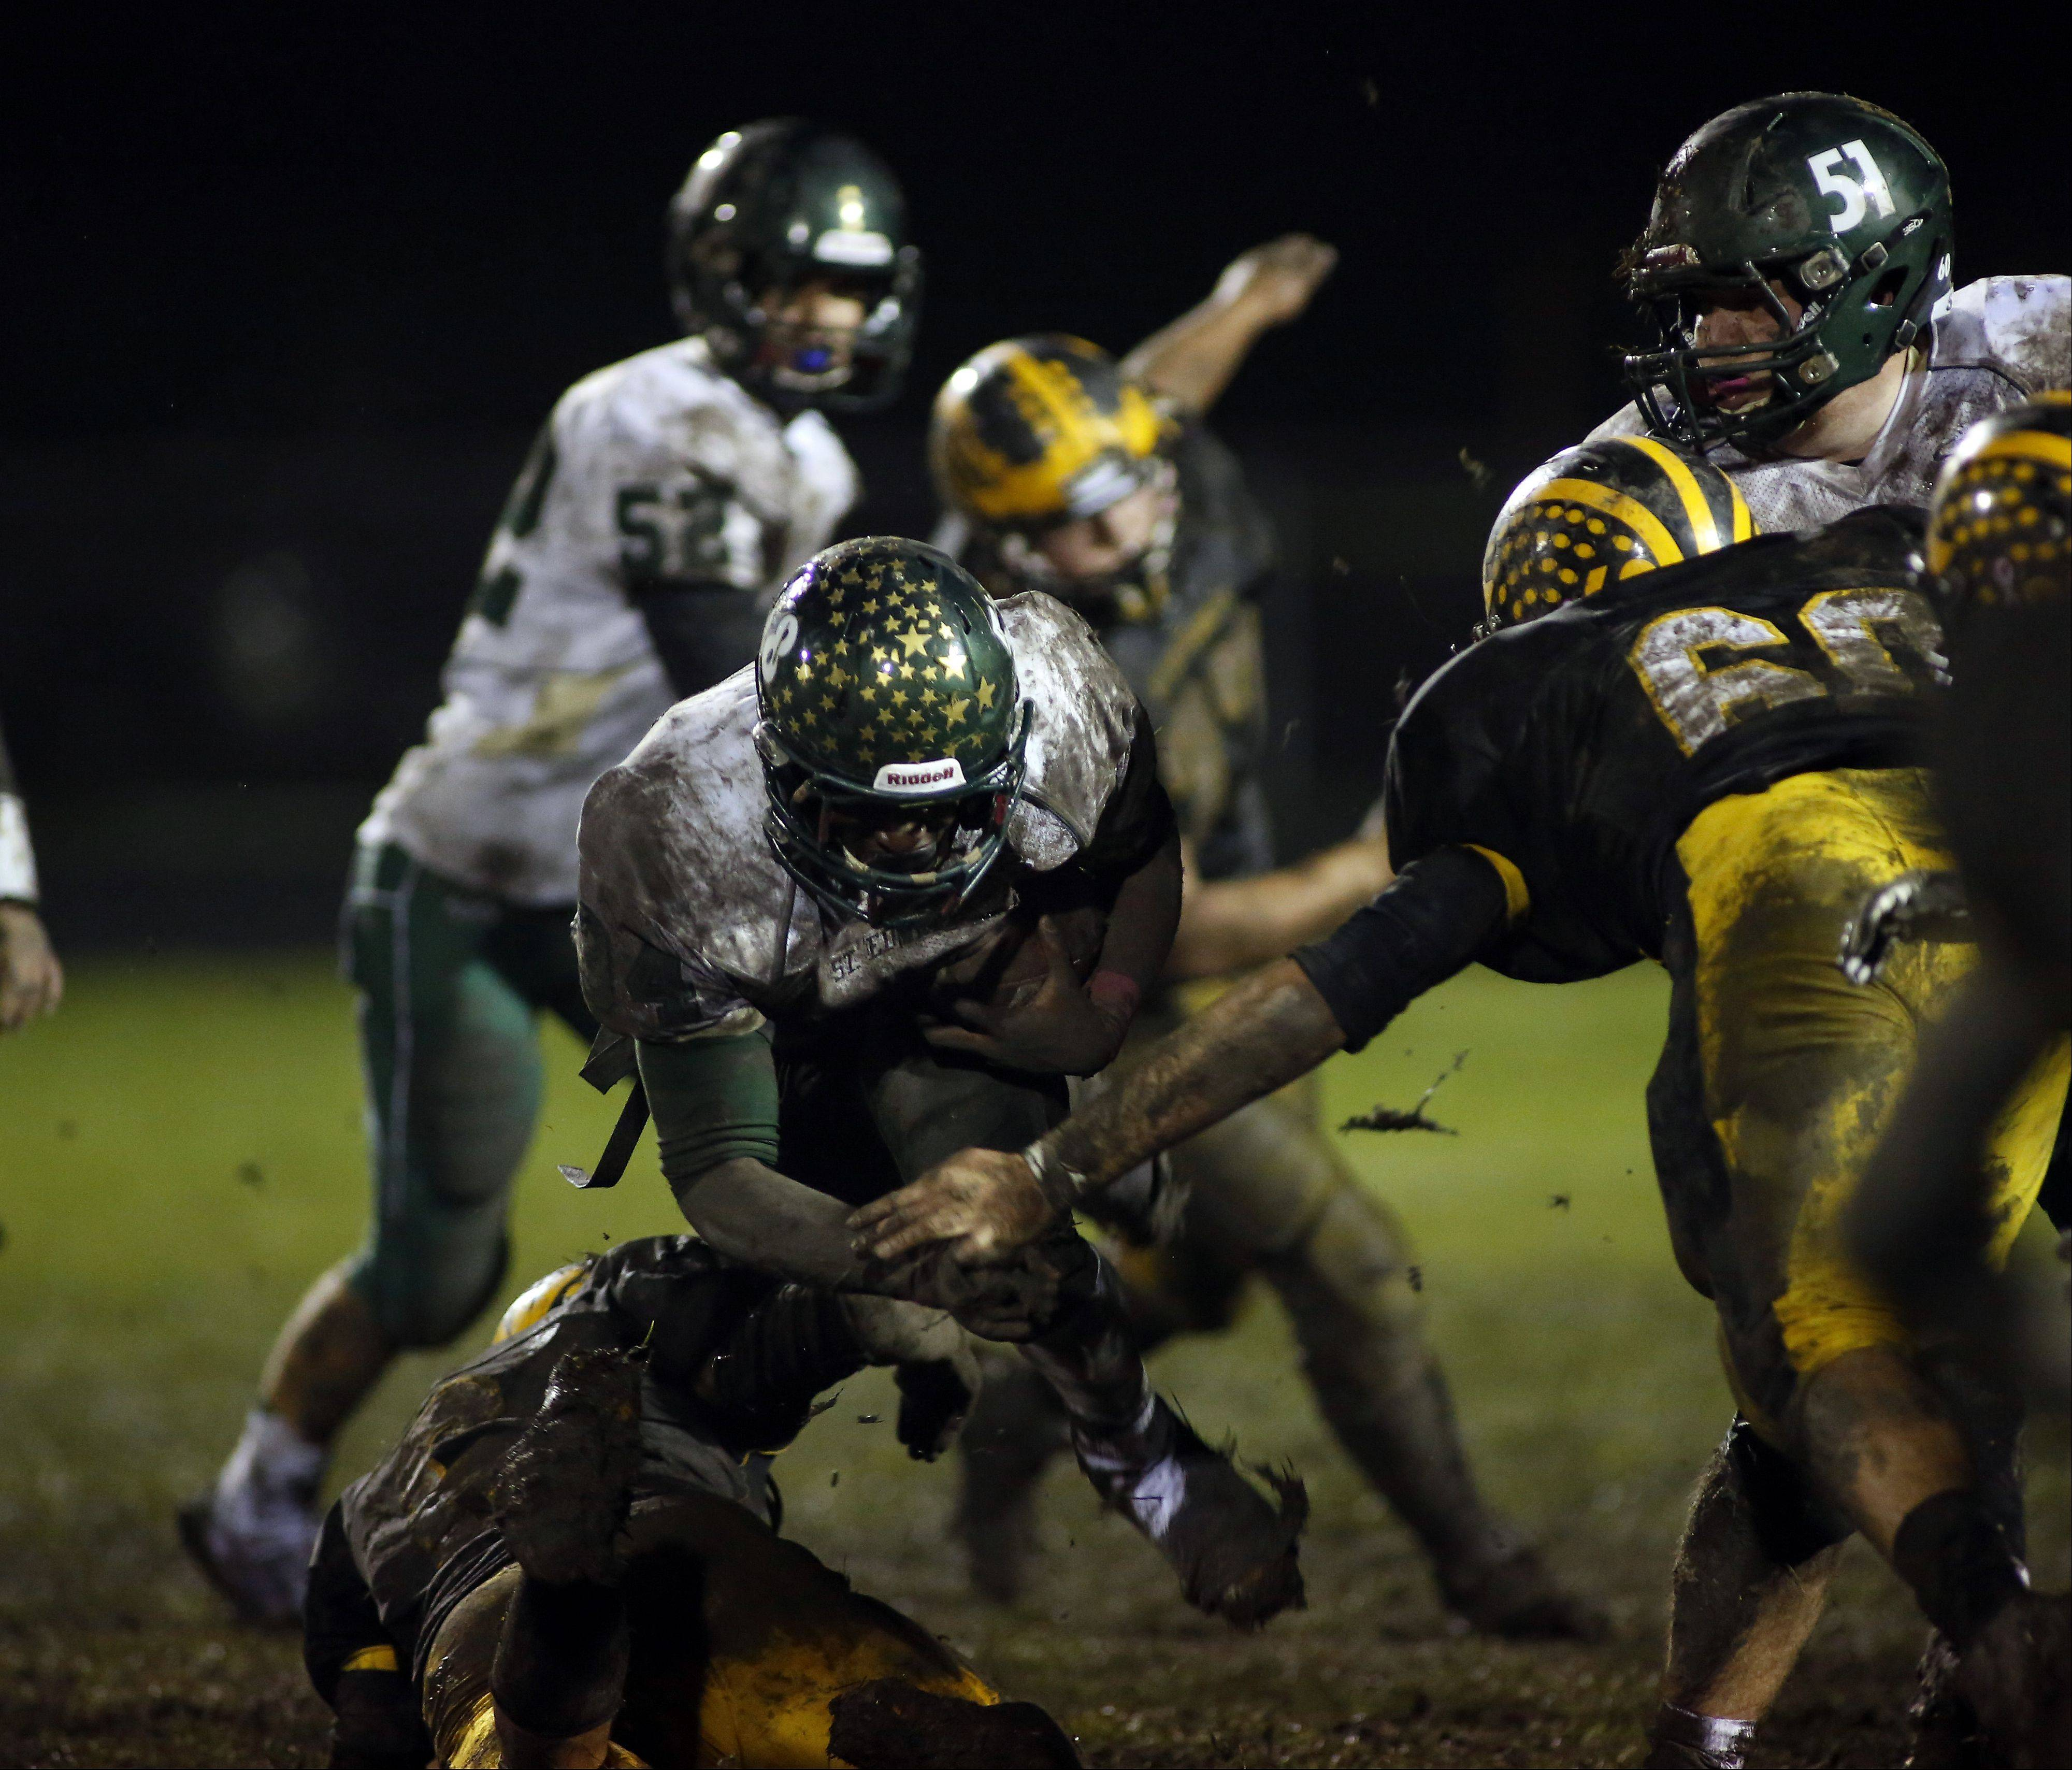 Playoffs - Round One - Images from the St. Edward vs. Harvard football game Friday, November 1, 2013.